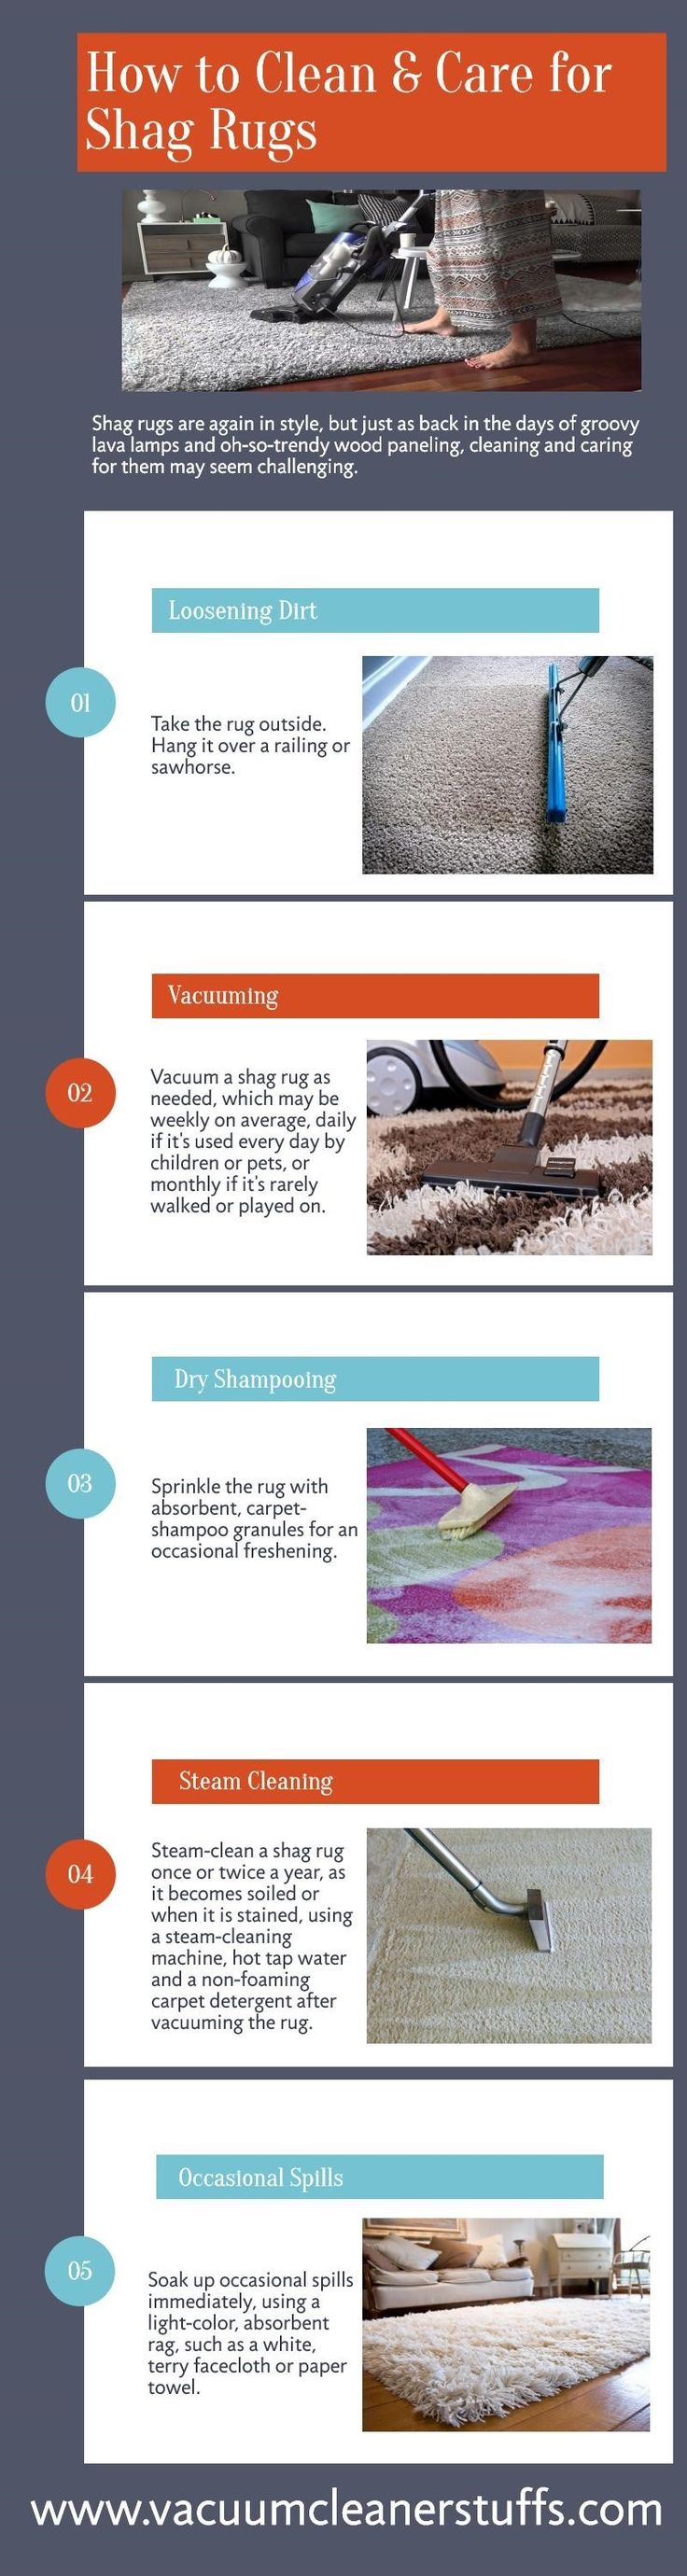 Steps to Clean and Care for #ShagRugs https://www.vacuumcleanerstuffs.com/best-vacuum-for-shag-carpet-reviews/ If you are buying #shagcarpet first-time for your home, then its cleaning is challenging for you. Because it is thick comparatively then another rug. In this infographic, you can see the steps for cleaning shag rugs.